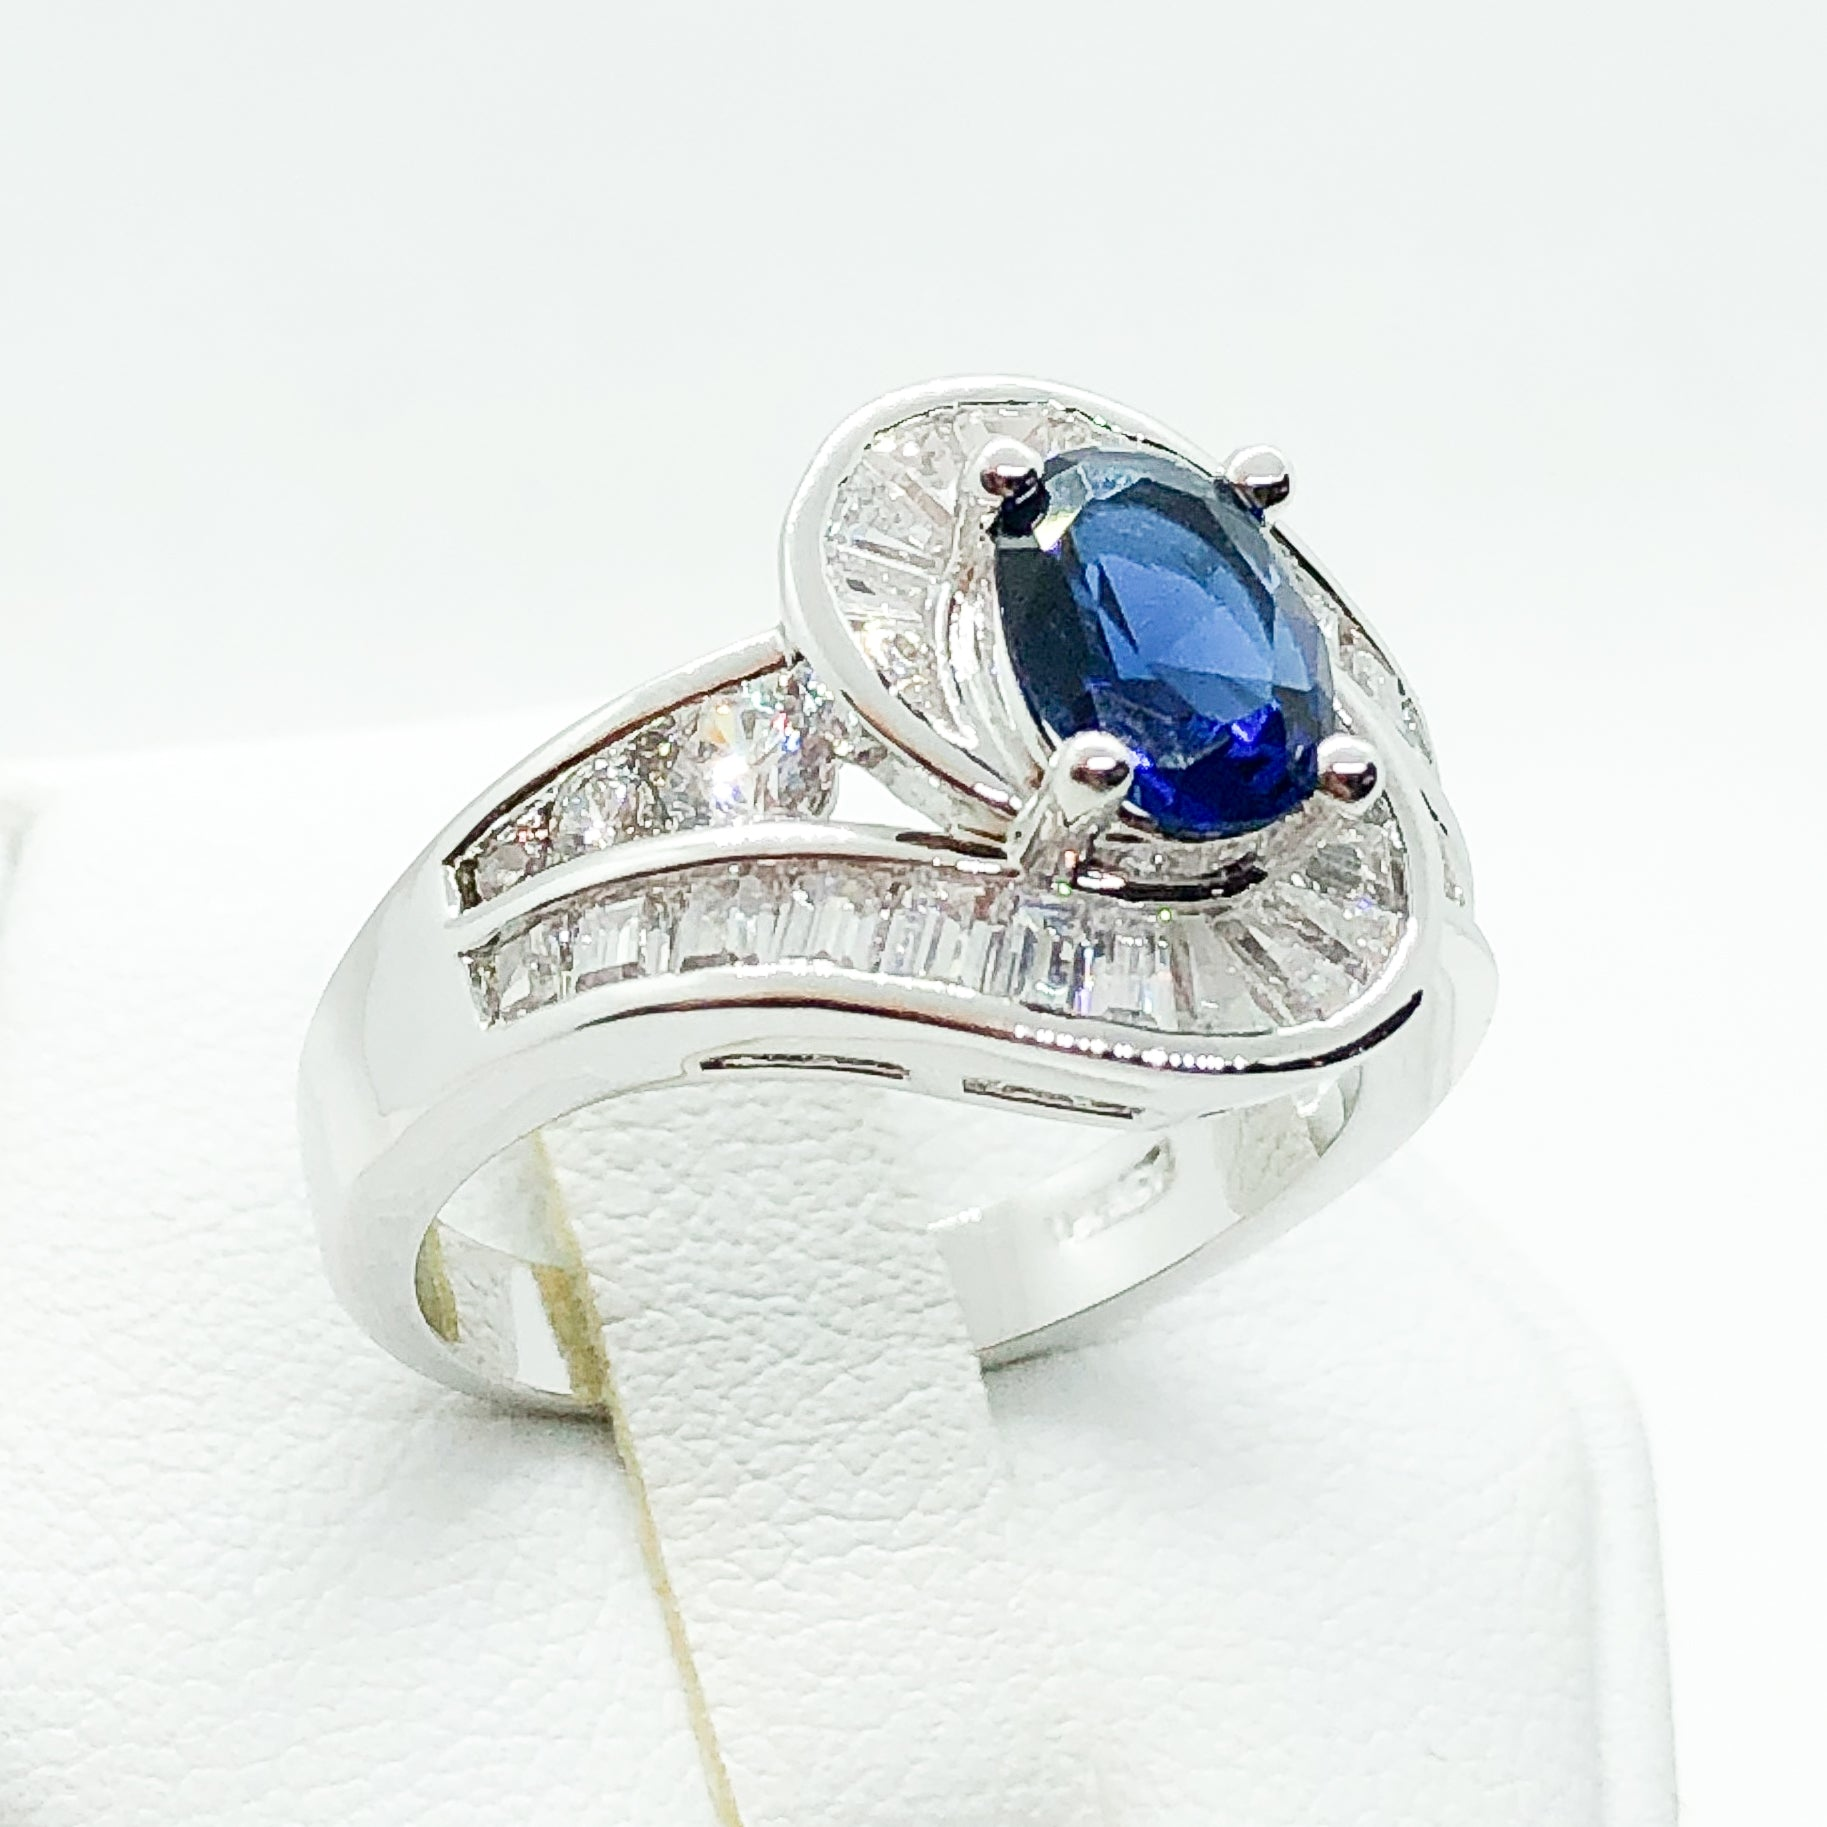 ID:R7893 Women Jewelry 18K White Gold GF Charming Classic Ring Oval Sapphire Solitaire With Clear Stones Accent